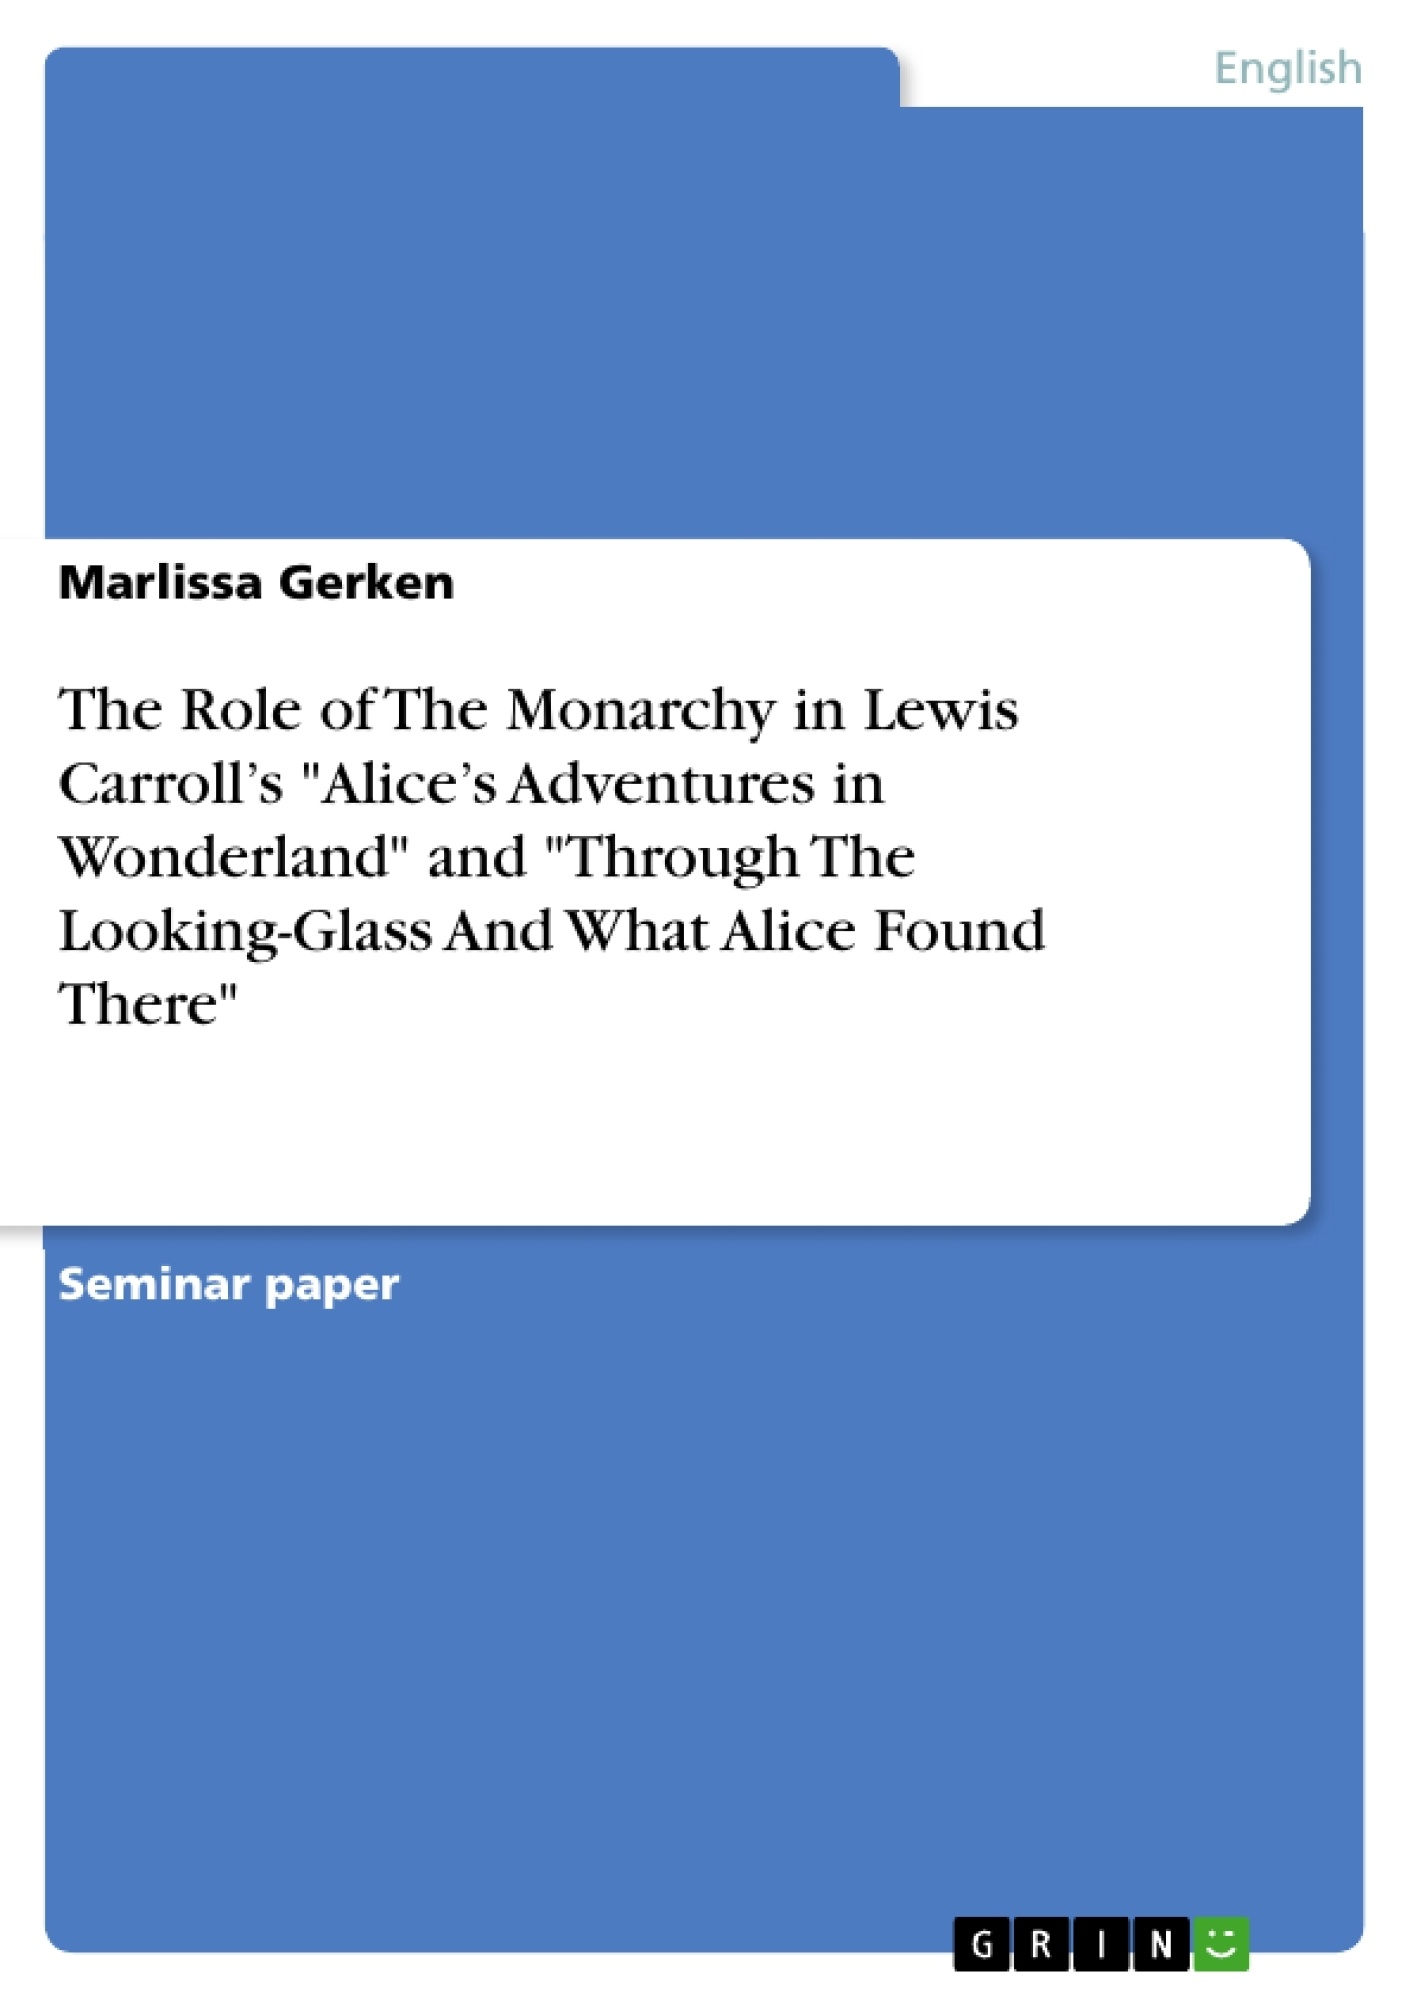 """Title: The Role of The Monarchy in Lewis Carroll's """"Alice's Adventures in Wonderland"""" and """"Through The Looking-Glass And What Alice Found There"""""""